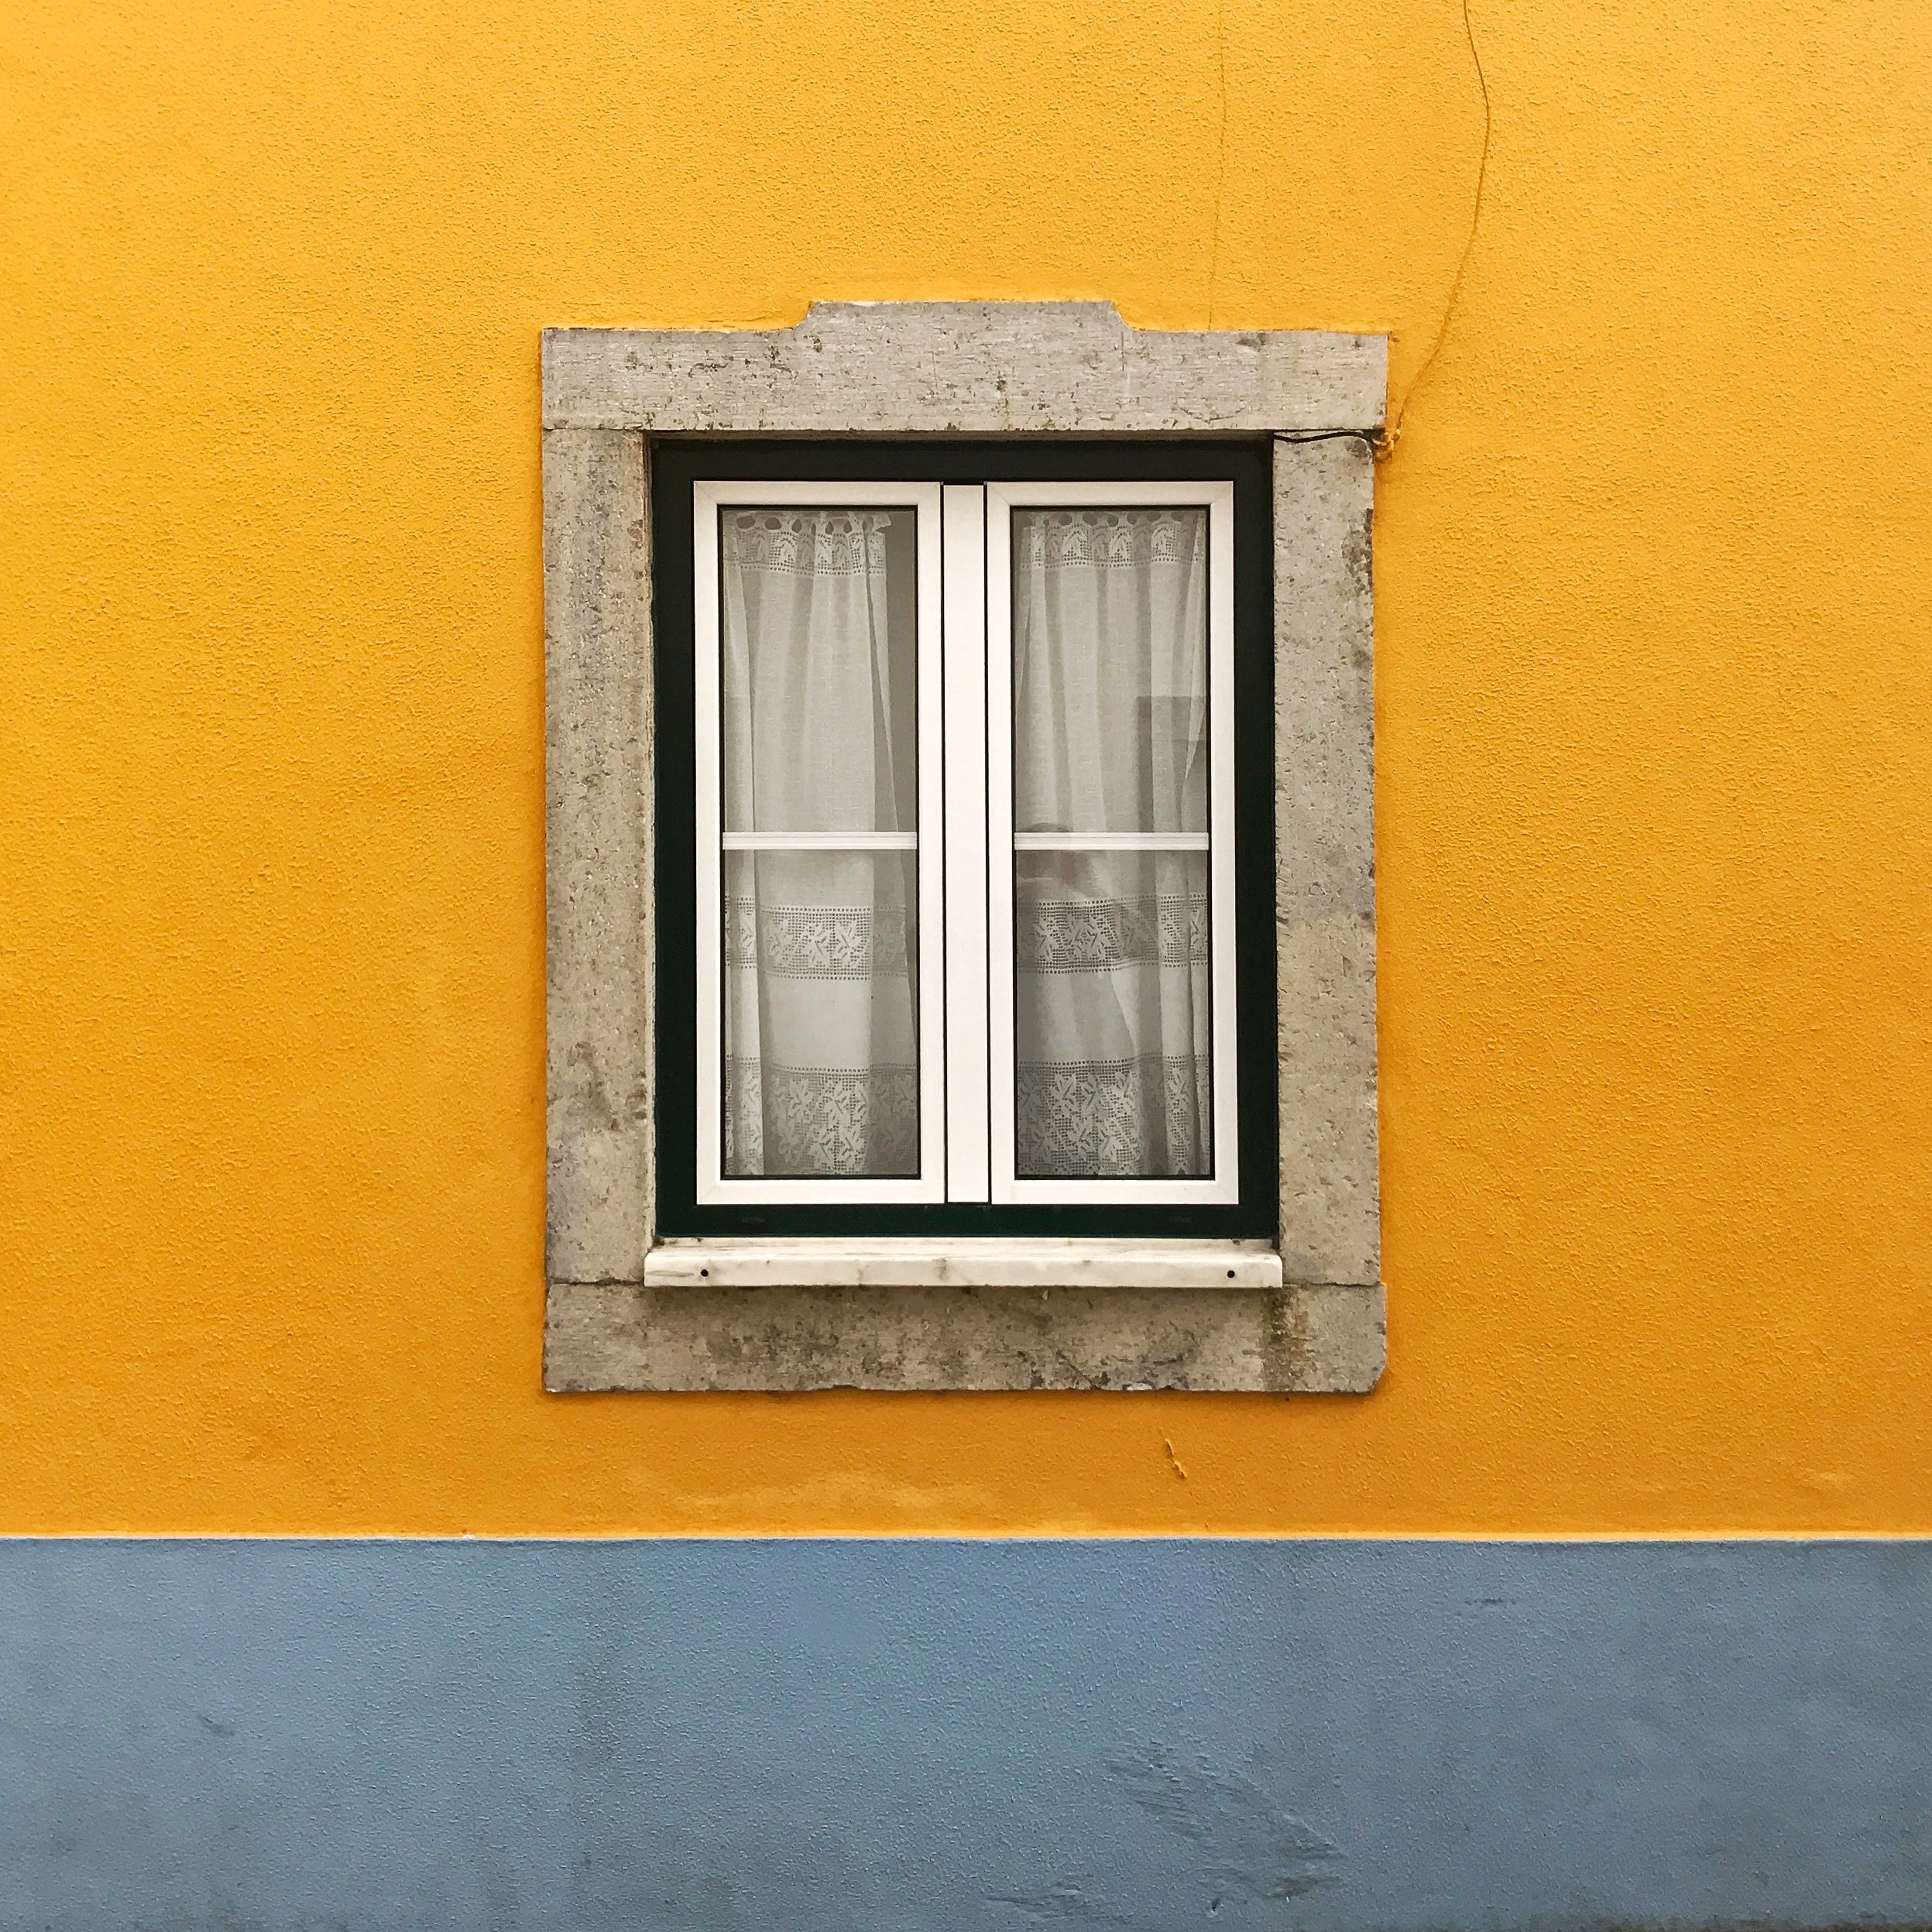 A window in the middle of a yellow building wall.